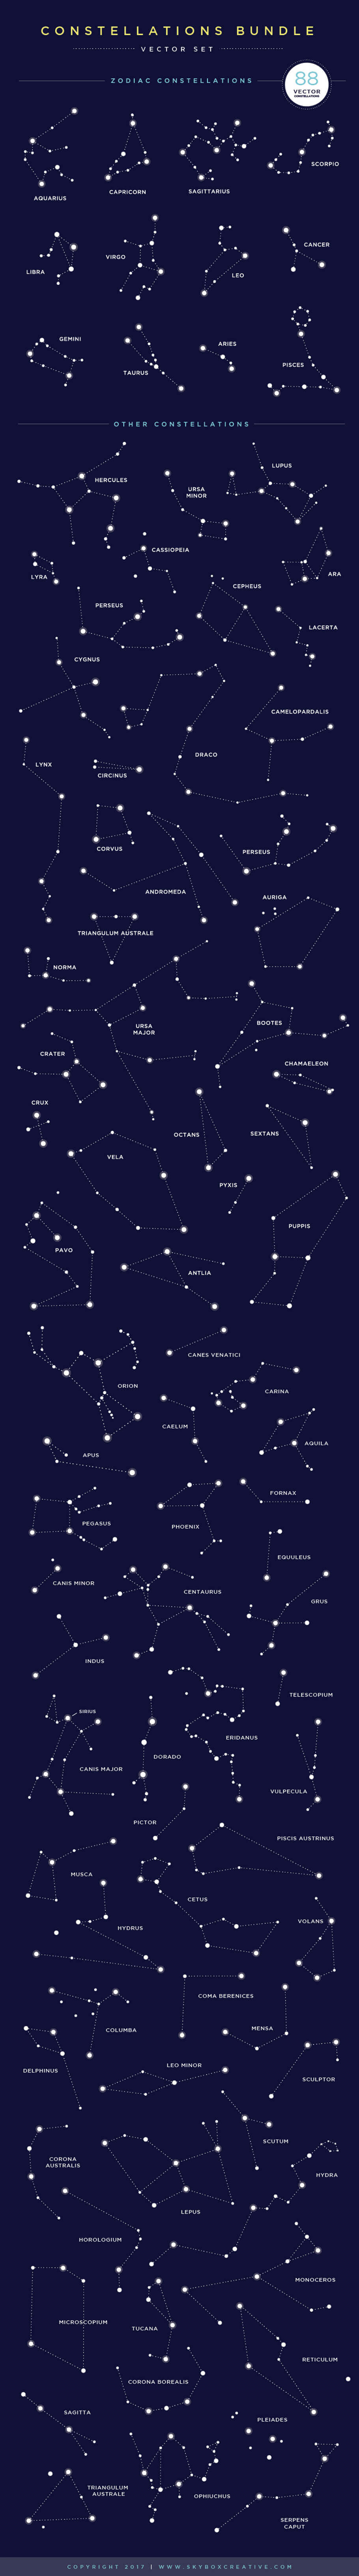 Creative Graphic Design - Cosmic Bundle: Constellation Set-1 - 3